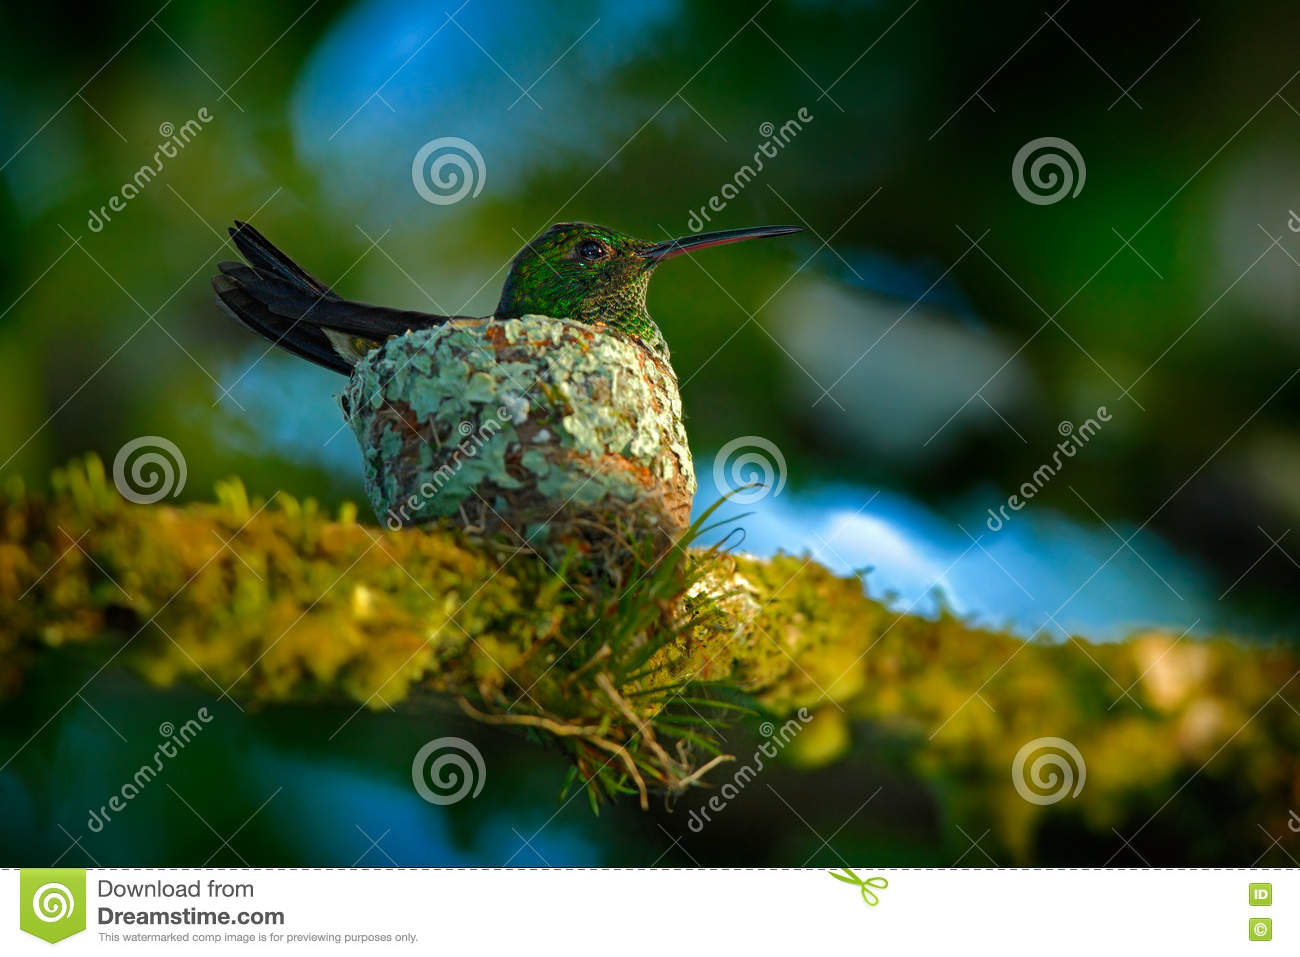 Adult hummingbird sitting on the eggs in the nest, Trinidad and Tobago. Copper-rumped Hummingbird, Amazilia tobaci, on the tree